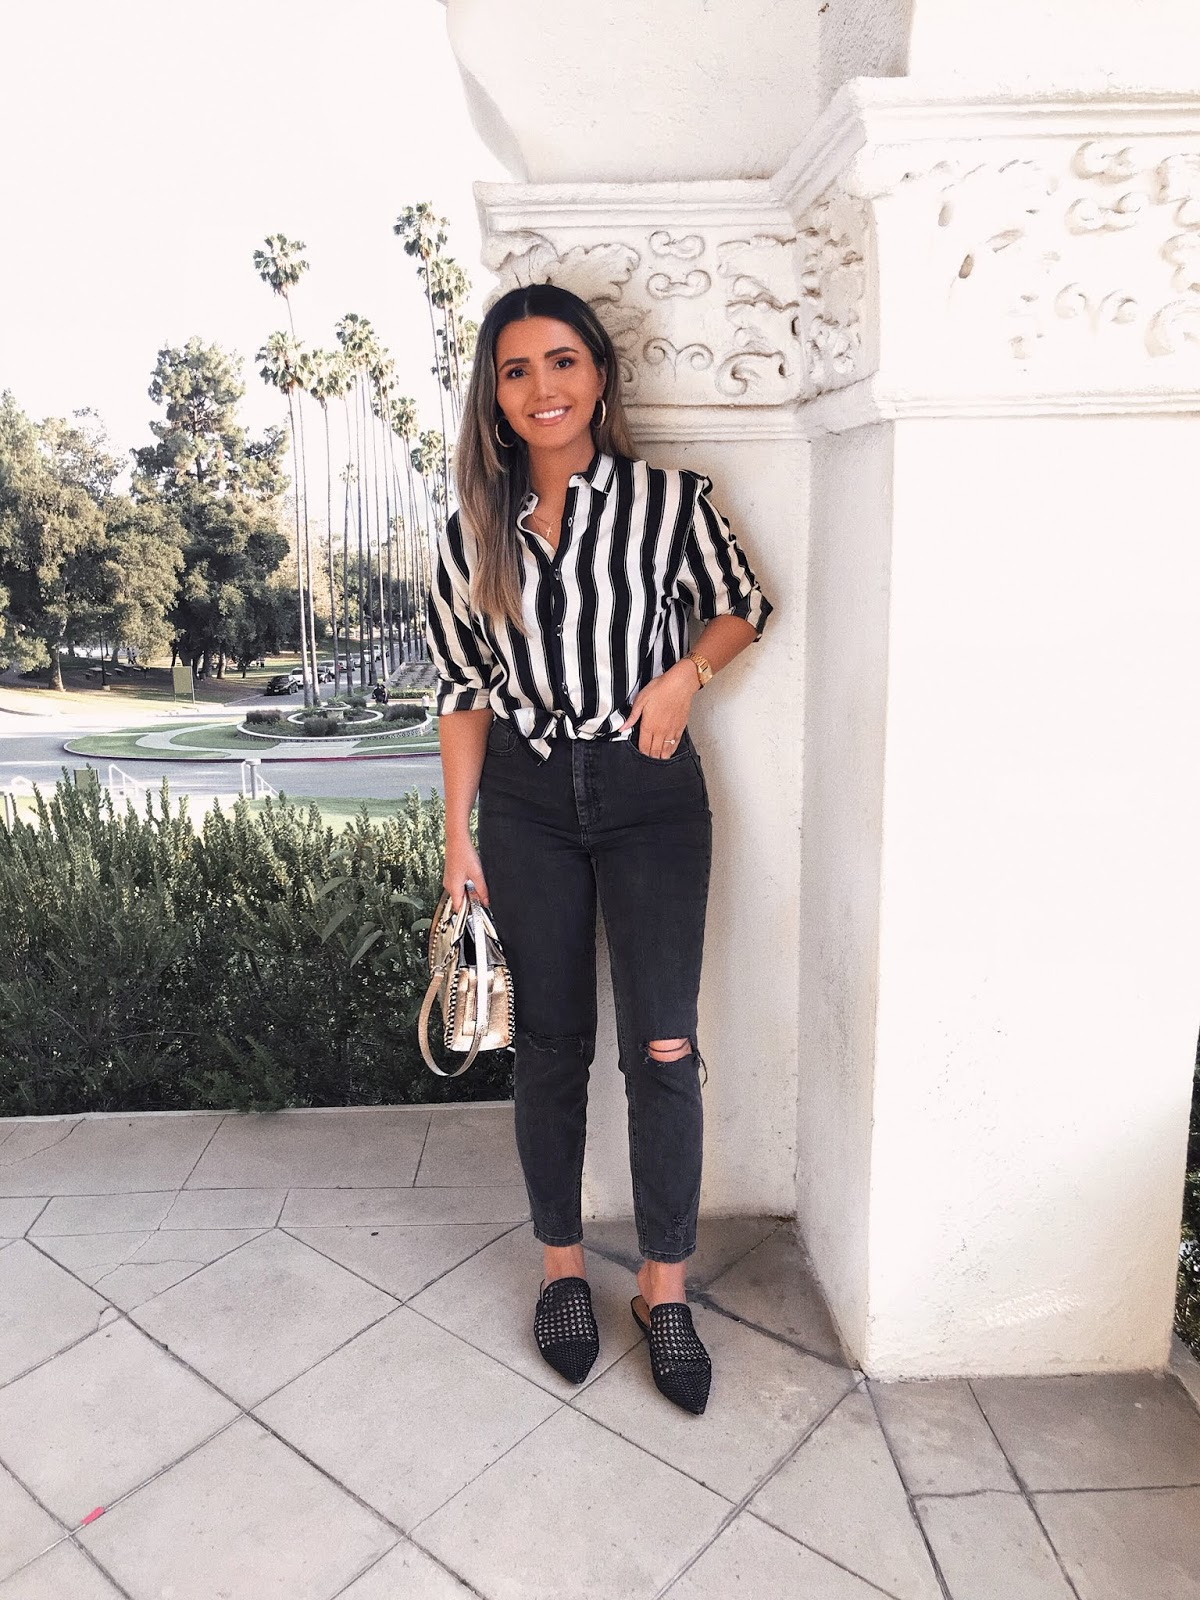 how to style button down shirt, Parmida Kiani, how to style, fashion tips, fall fashion 2018, stripe button down, asos men's shirt, styling my boyfriends shirt, wearing husband's shirt, tied button down, asos farleigh jeans, affordable fashion, Persian blogger, LA blogger, Pinterest outfit, ootd, outfit Inspo, what to wear, Los Angeles,